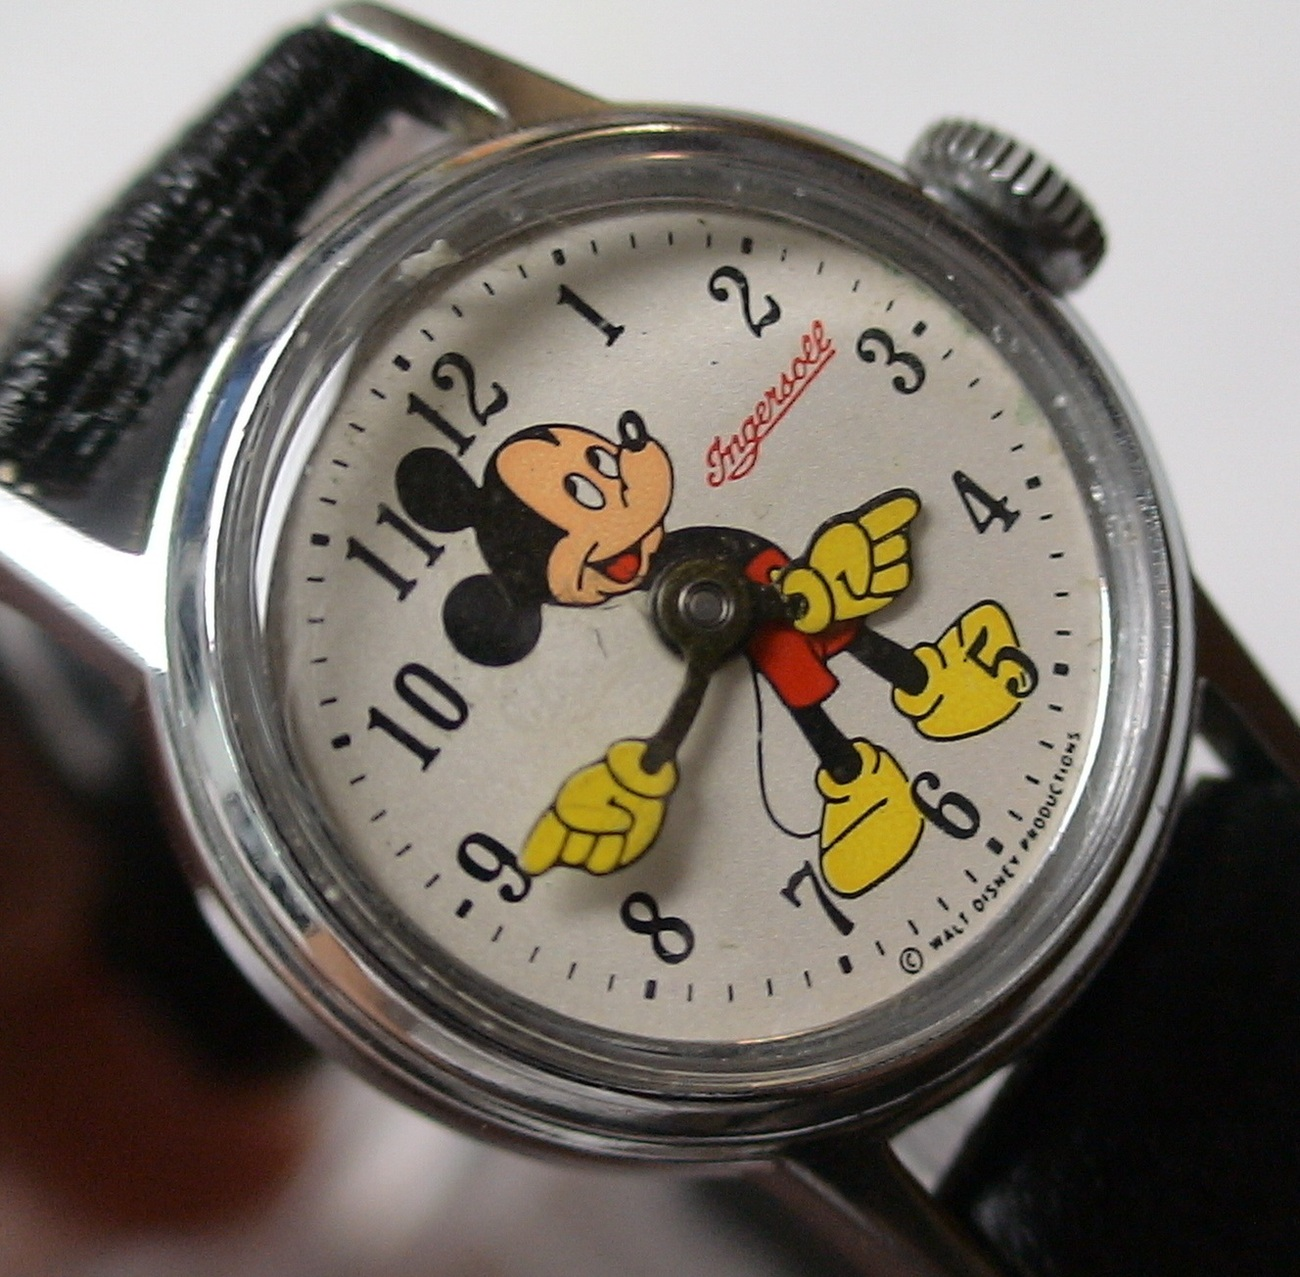 1960's Ingersoll Mickey Mouse Silver Watch - Mint